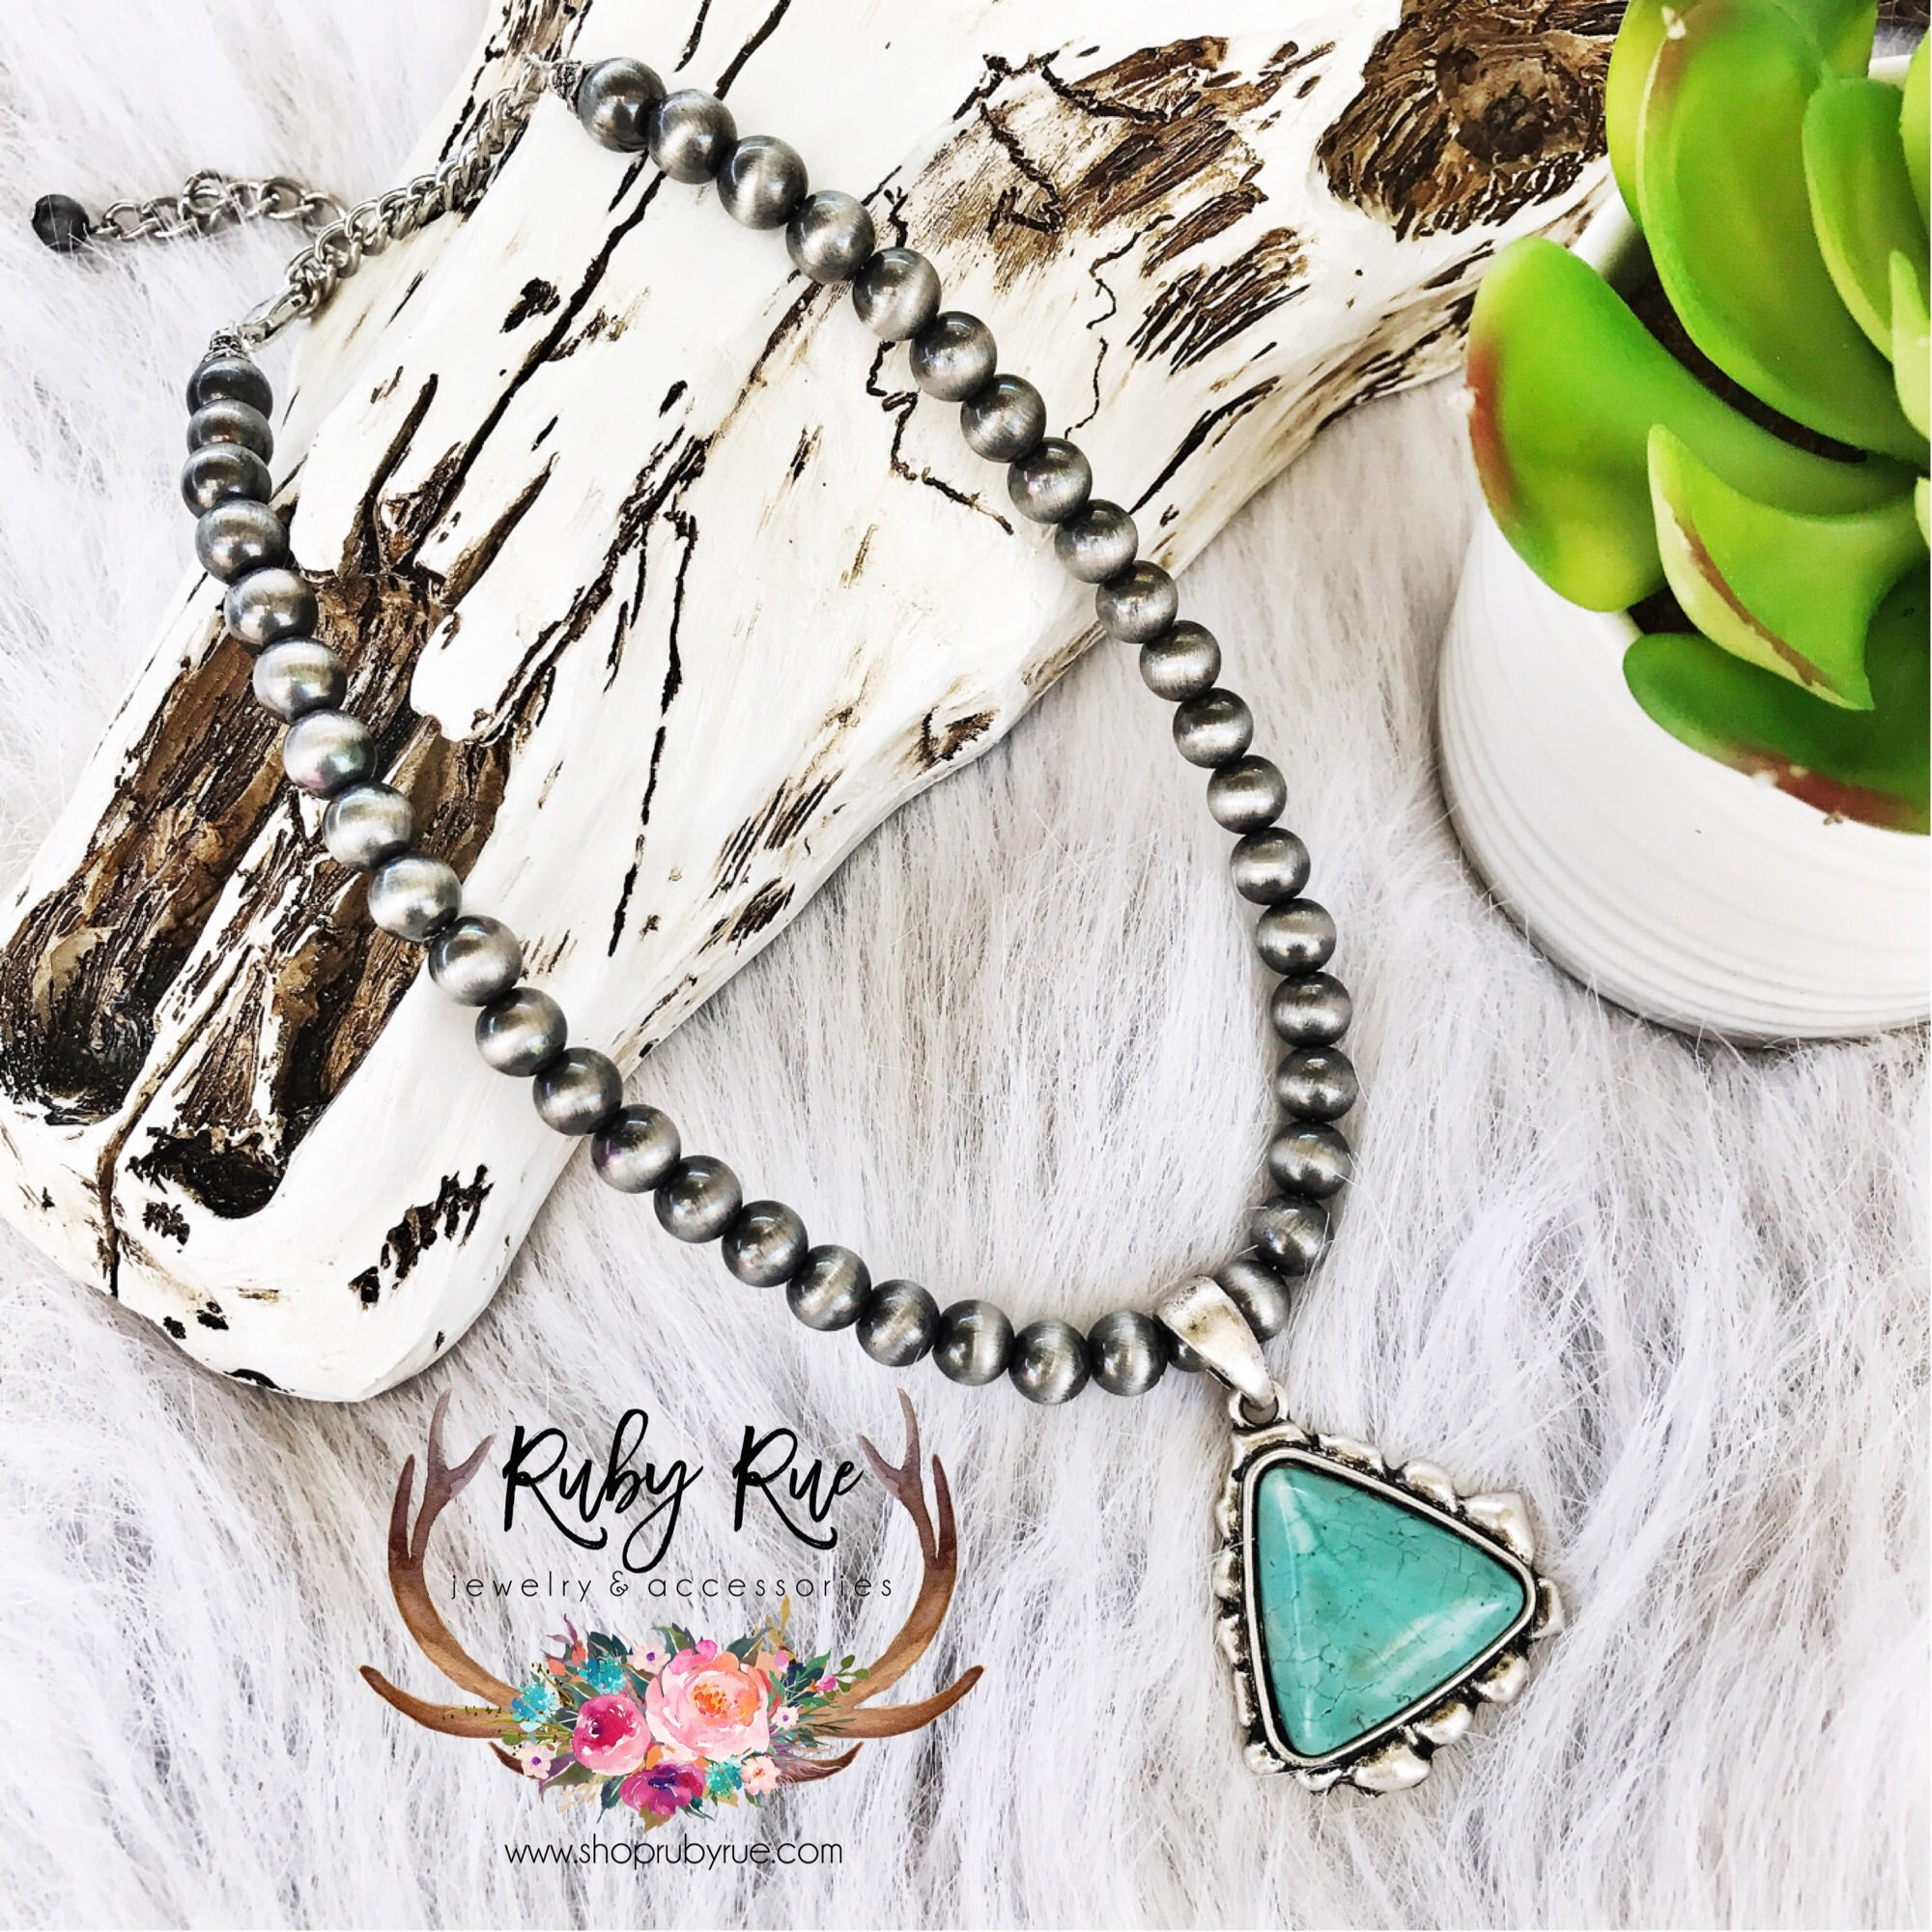 Triangle Turquoise Necklace - Ruby Rue Jewelry & Accessories